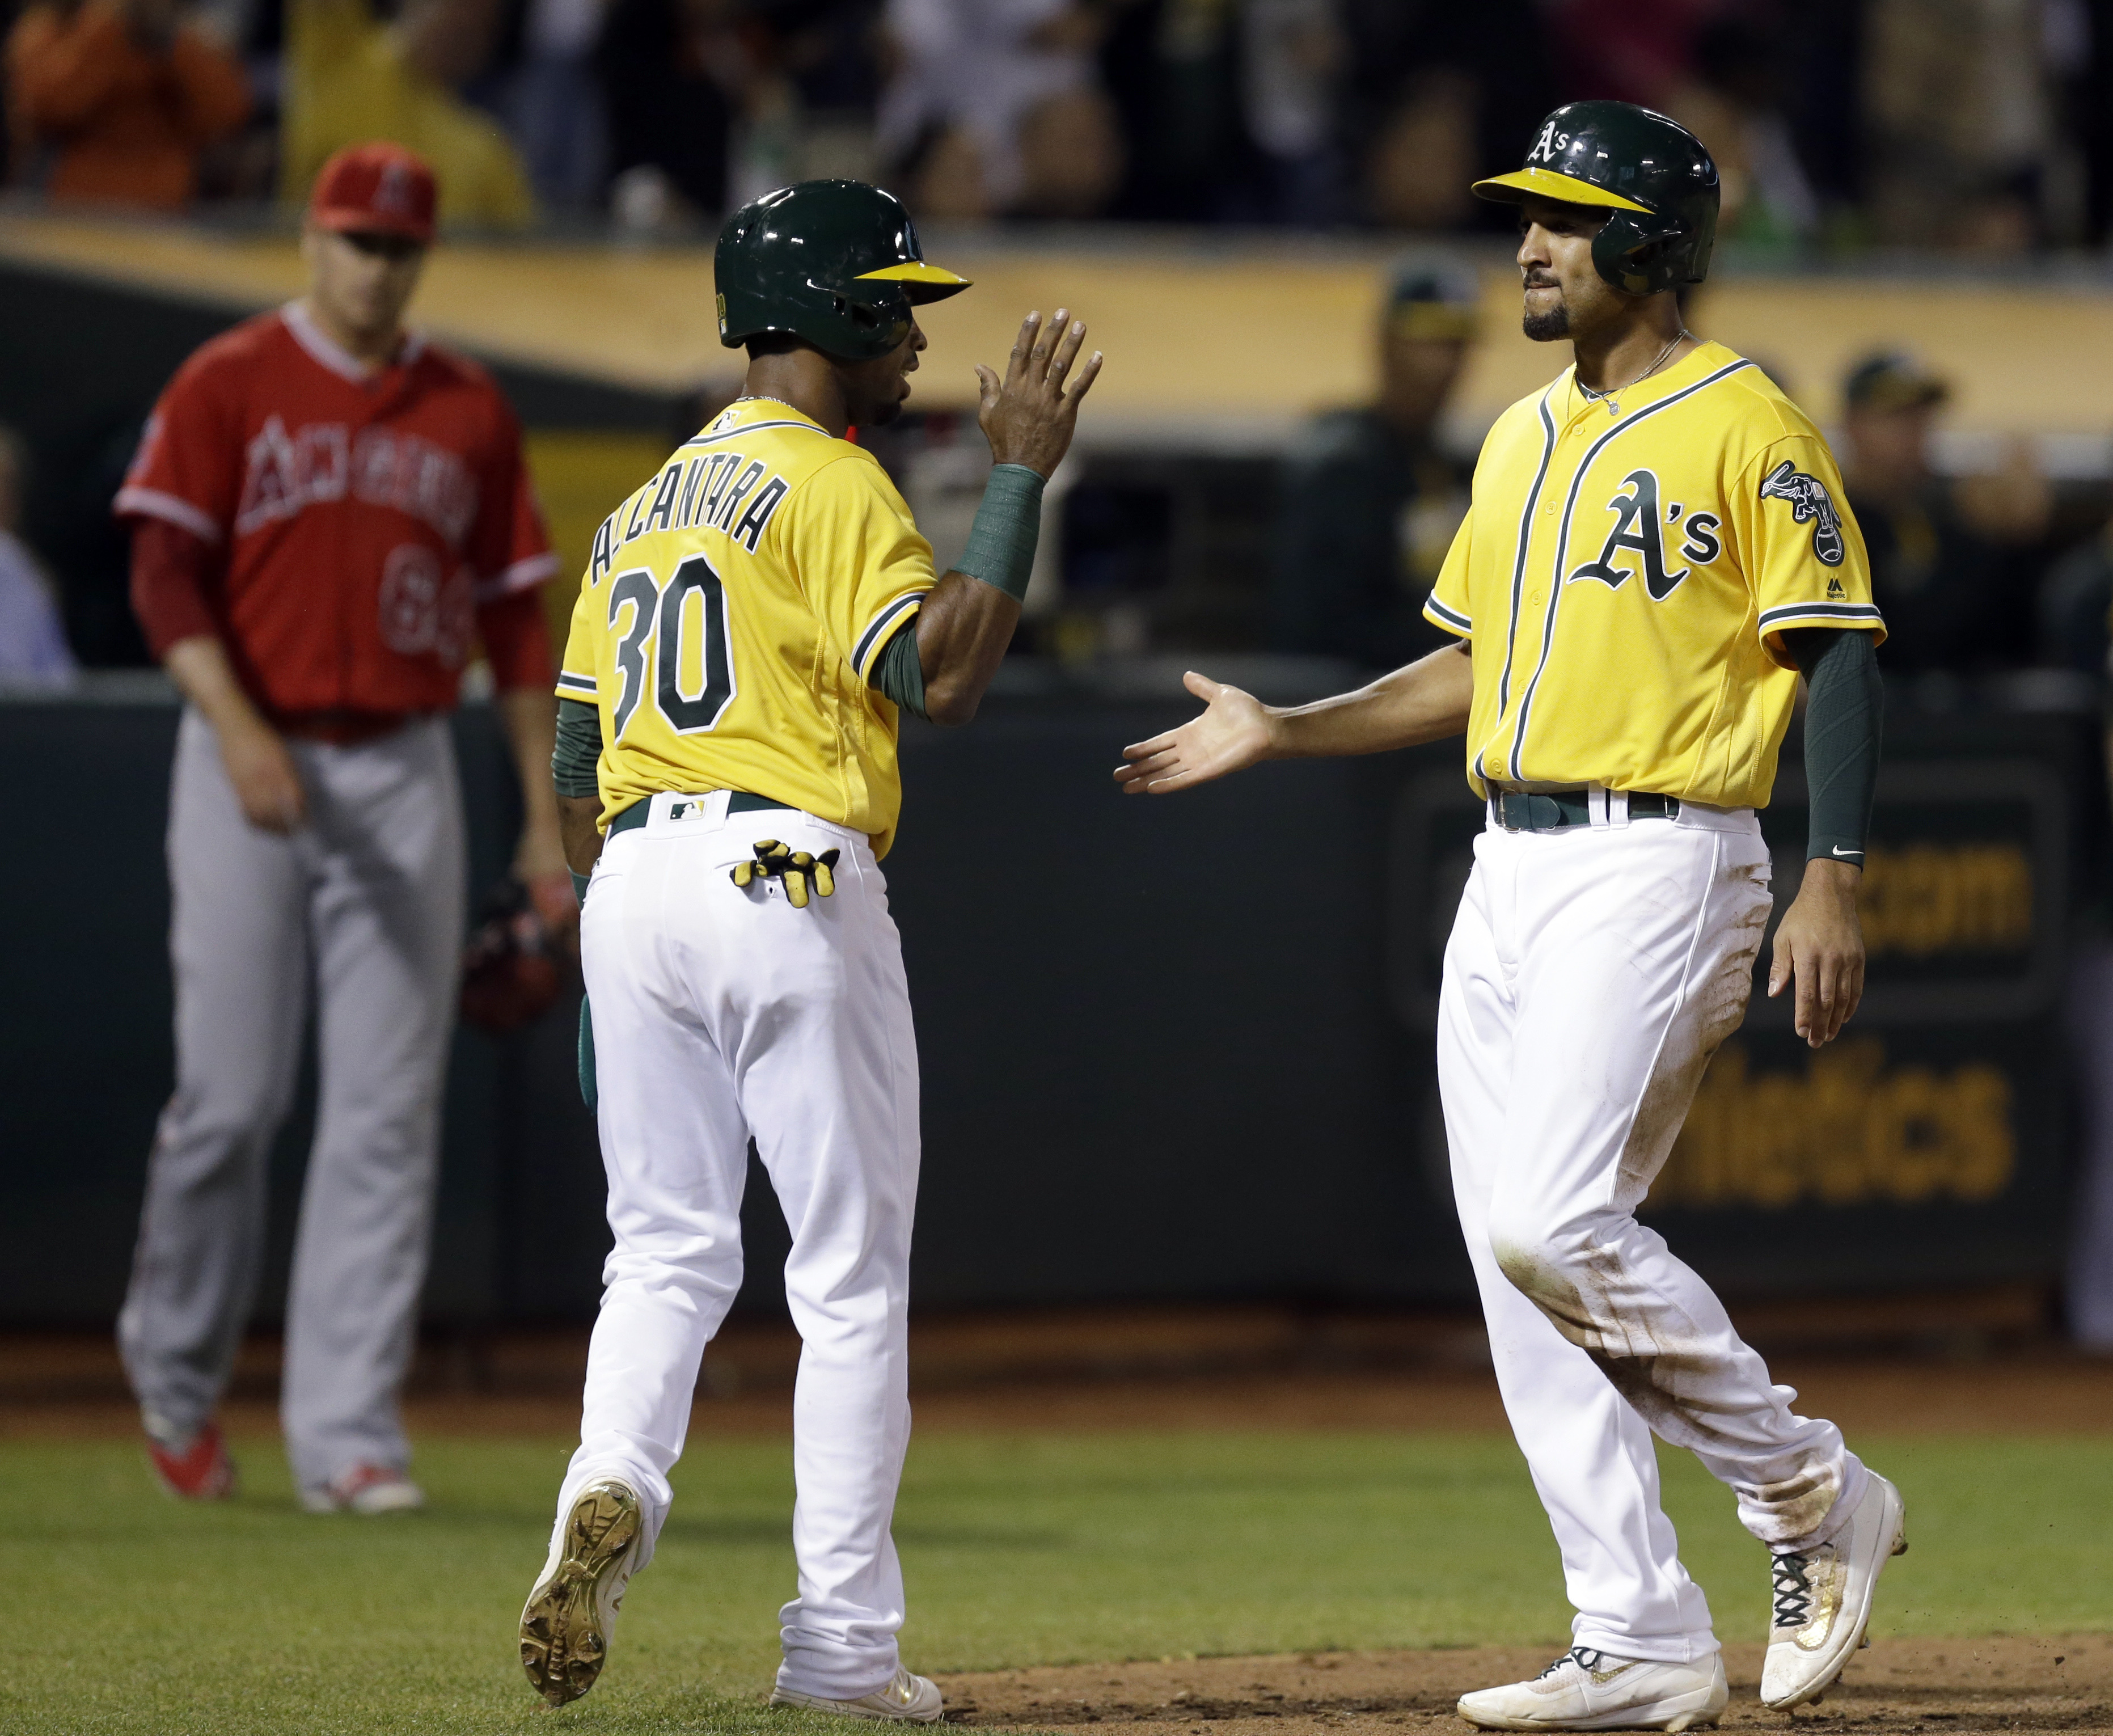 Oakland Athletics' Marcus Semien, right, celebrates with Arismendy Alcantara (30) after scoring against the Los Angeles Angels during the eighth inning of a baseball game Tuesday, Sept. 6, 2016, in Oakland, Calif.  (AP Photo/Ben Margot)